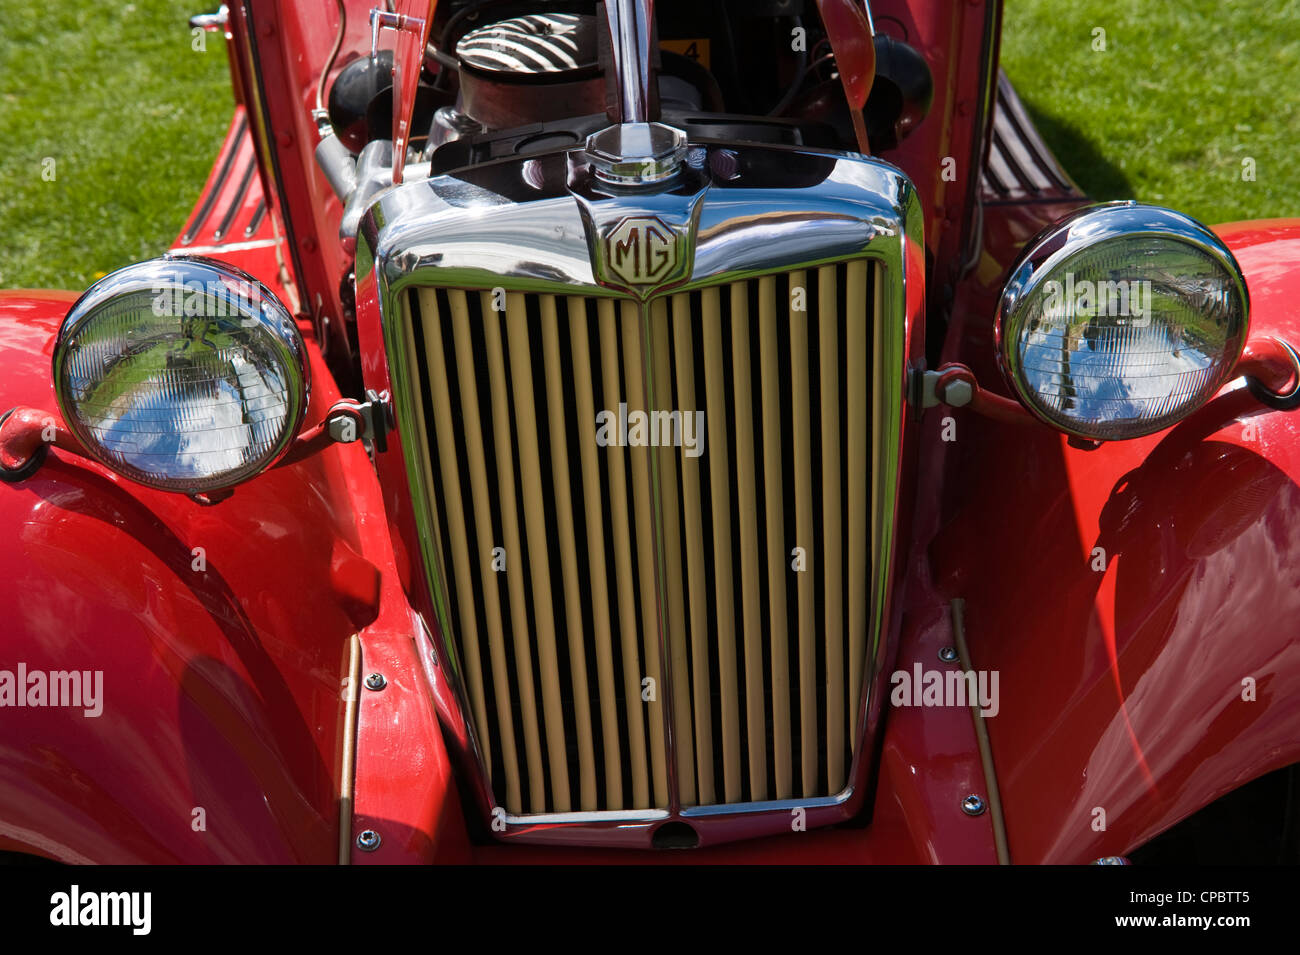 Vintage classic red MG convertible sports car on display at the ...